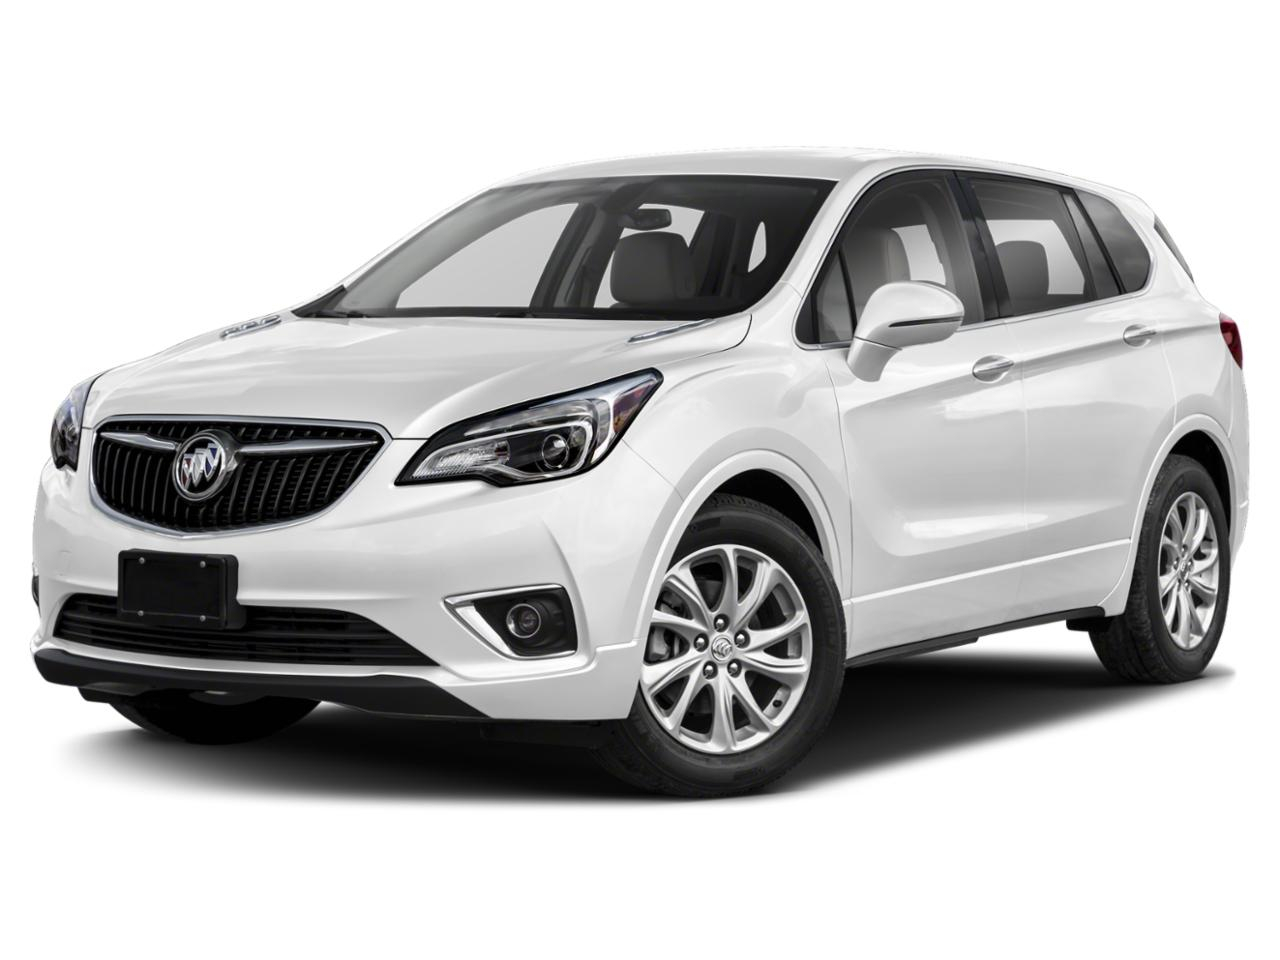 New 2020 Buick Envision Awd 4Dr Premium New 2021 Buick Envision Accessories, Awd, Build And Price